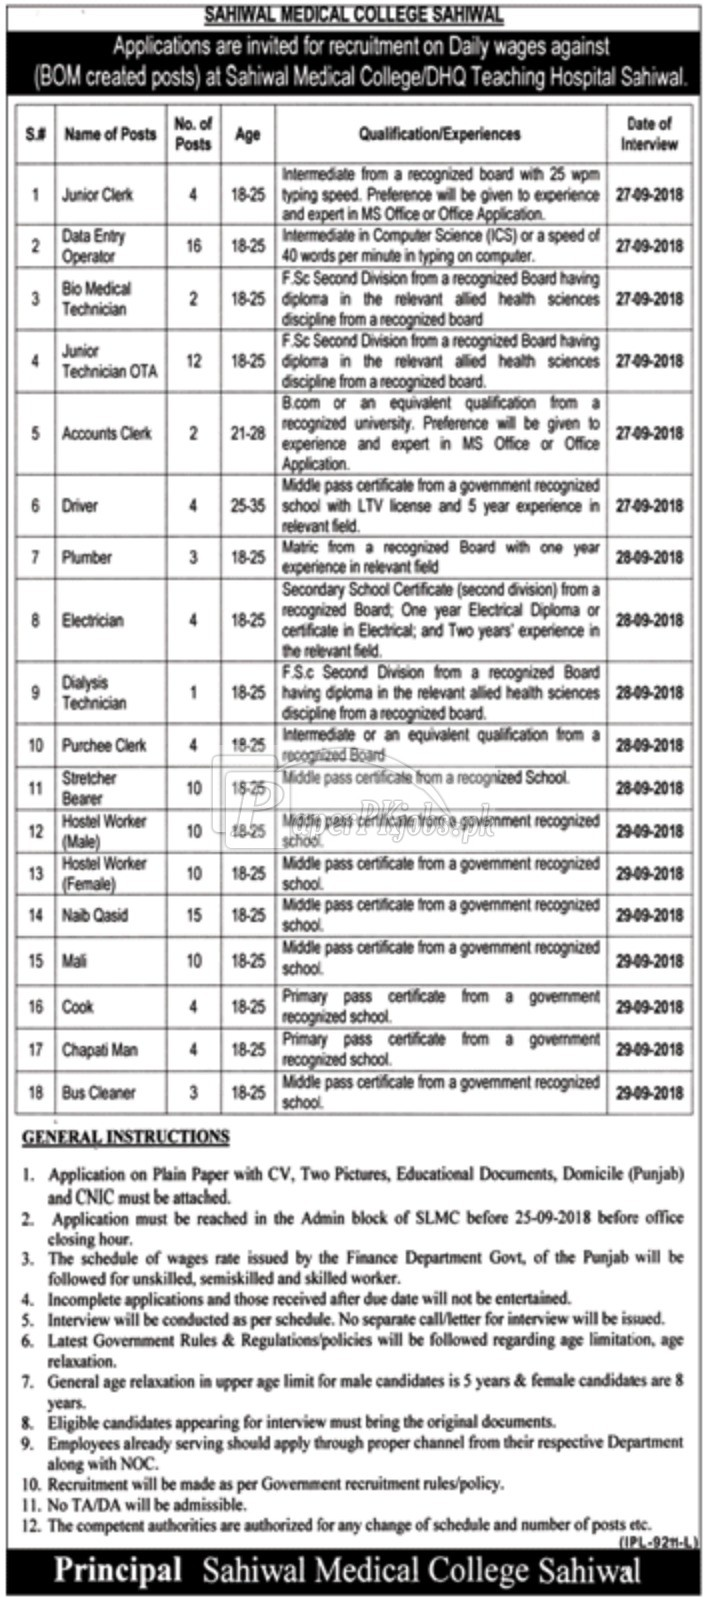 Sahiwal Medical College Sahiwal Jobs 2018